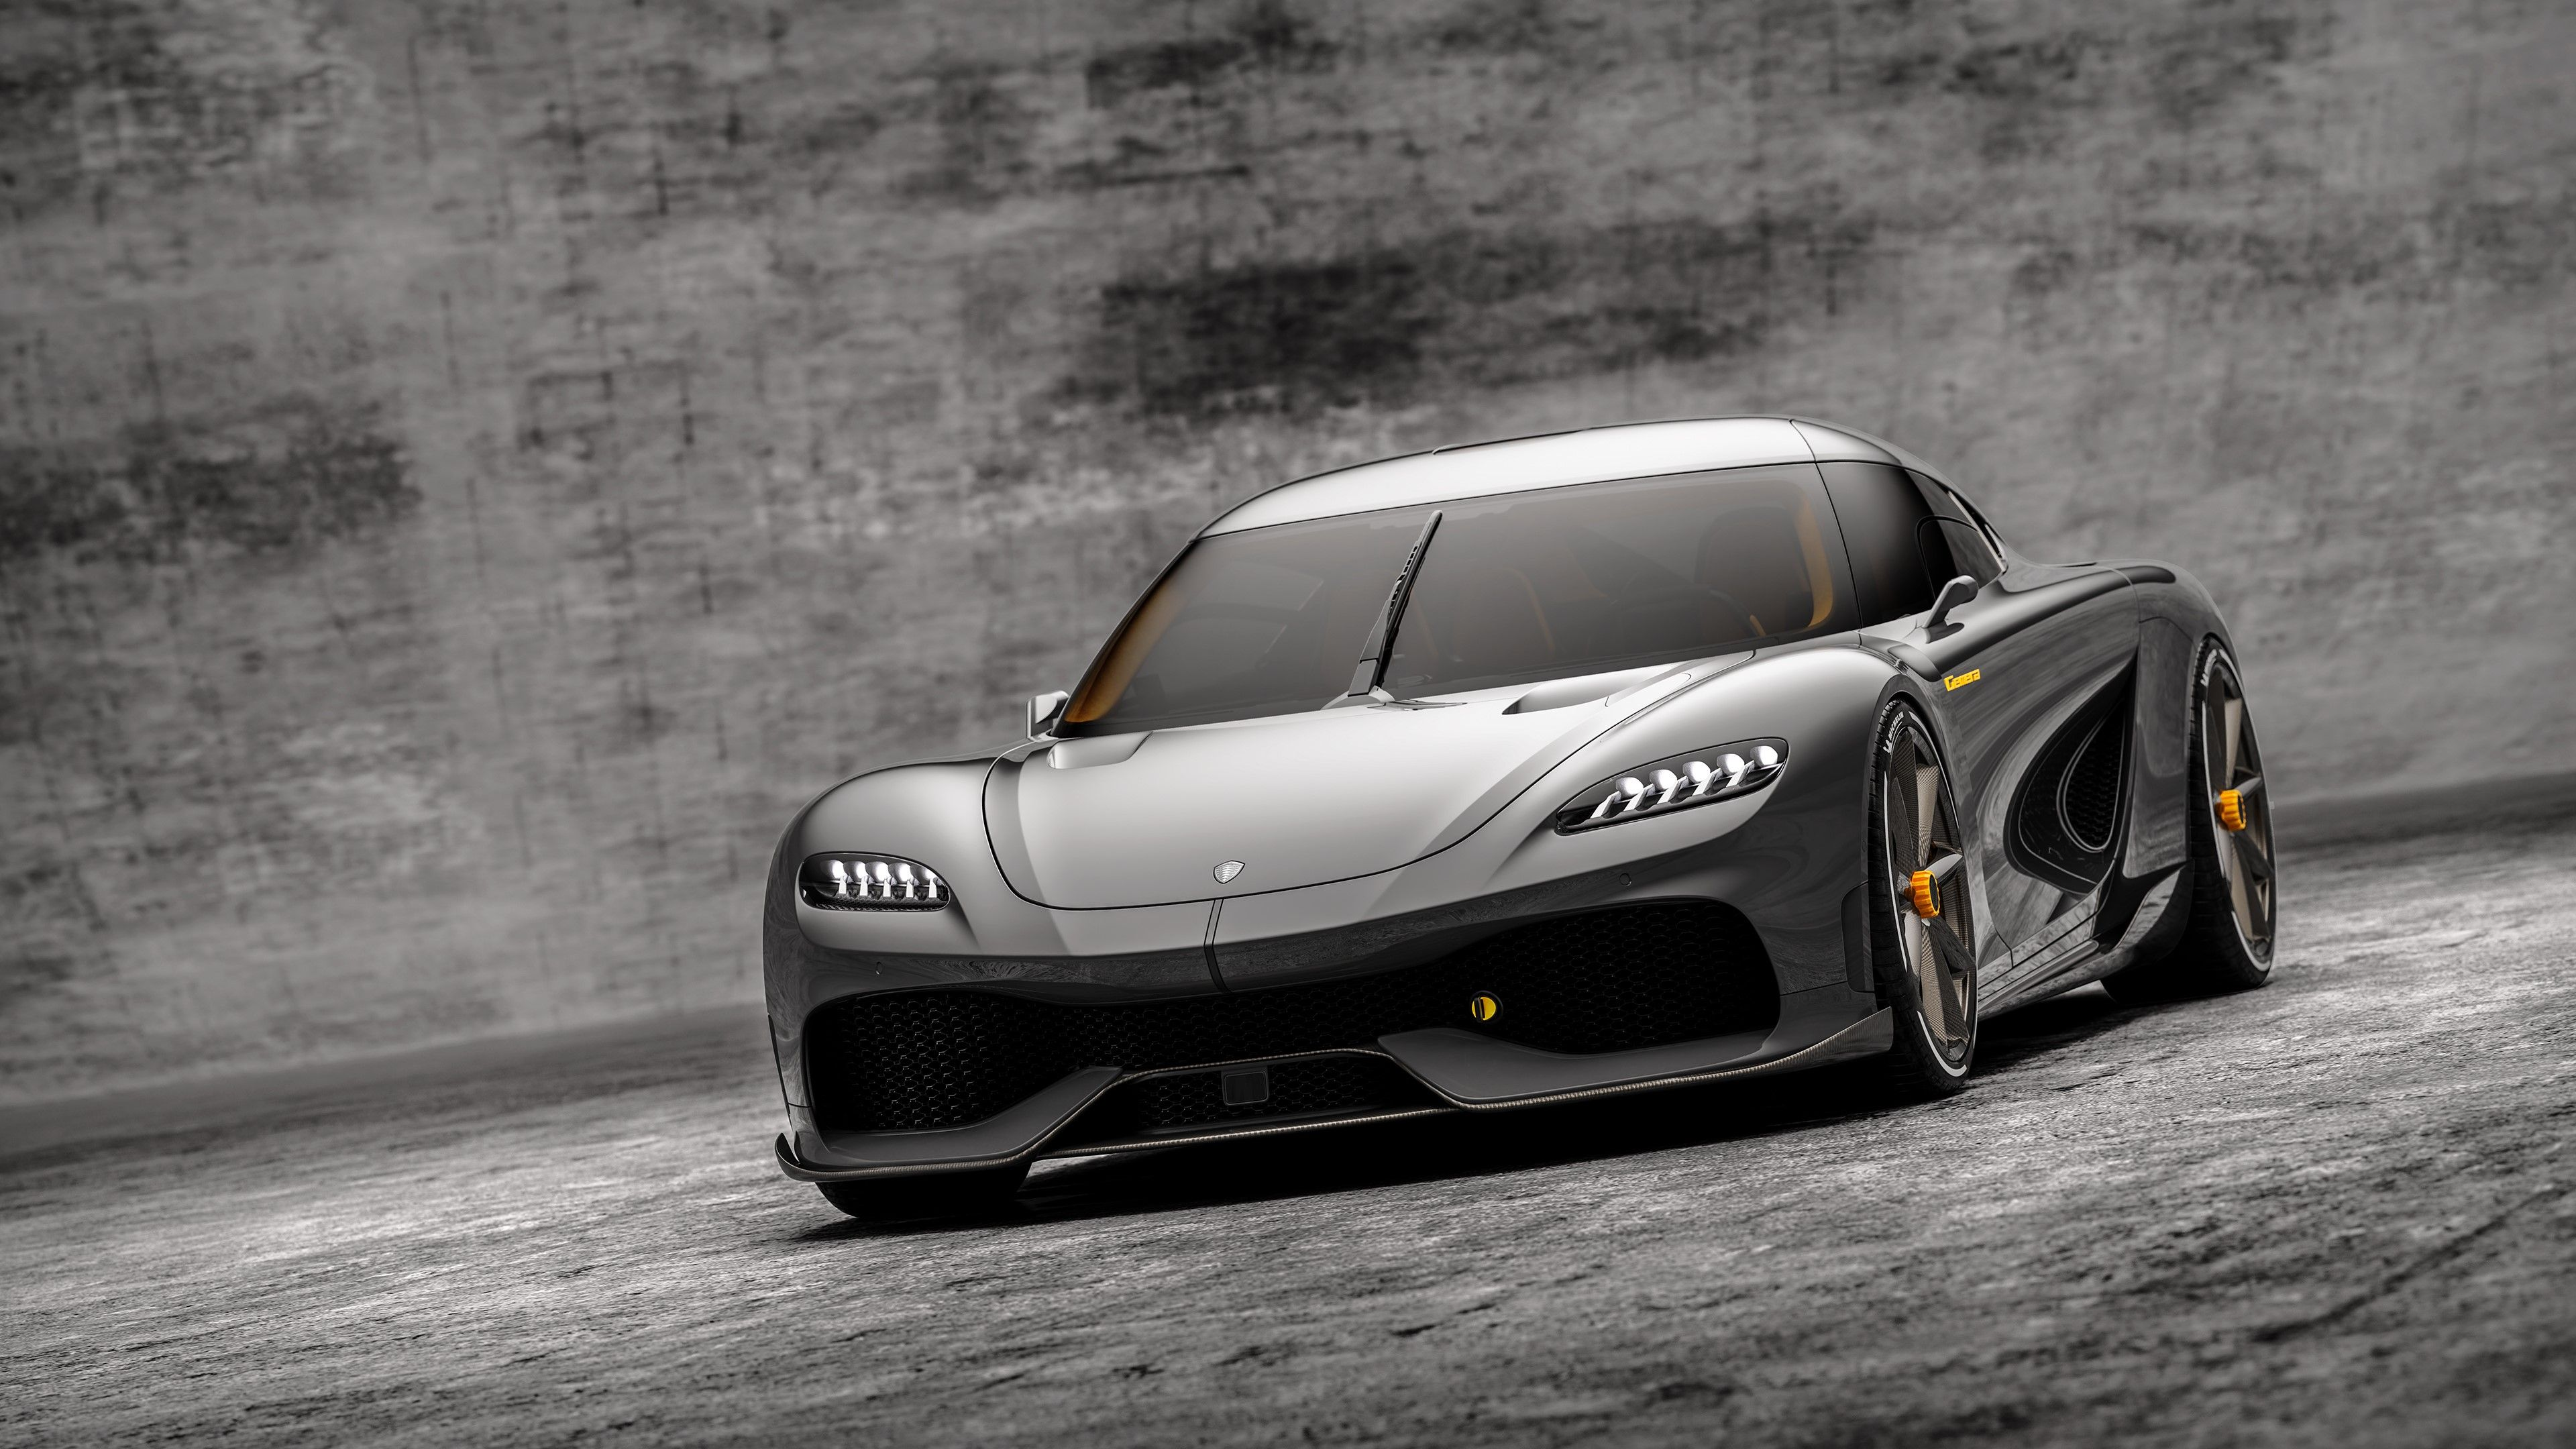 2021 Koenigsegg Gemera Top Speed In 2020 Koenigsegg Super Cars Car